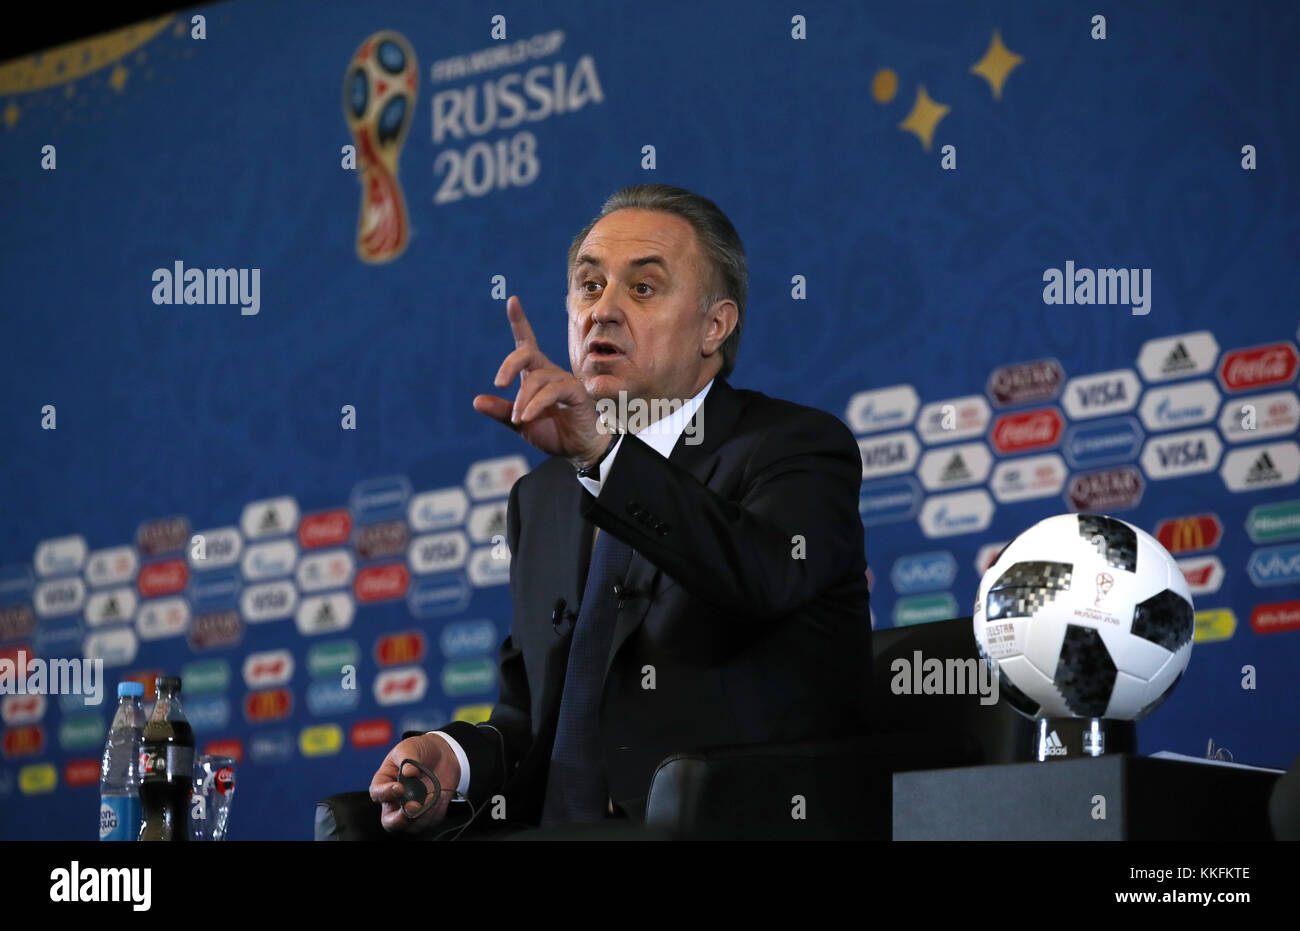 Vitaly Mutko, president of the Russian Football Union during a press conference ahead of the FIFA 2018 World Cup - Stock Image